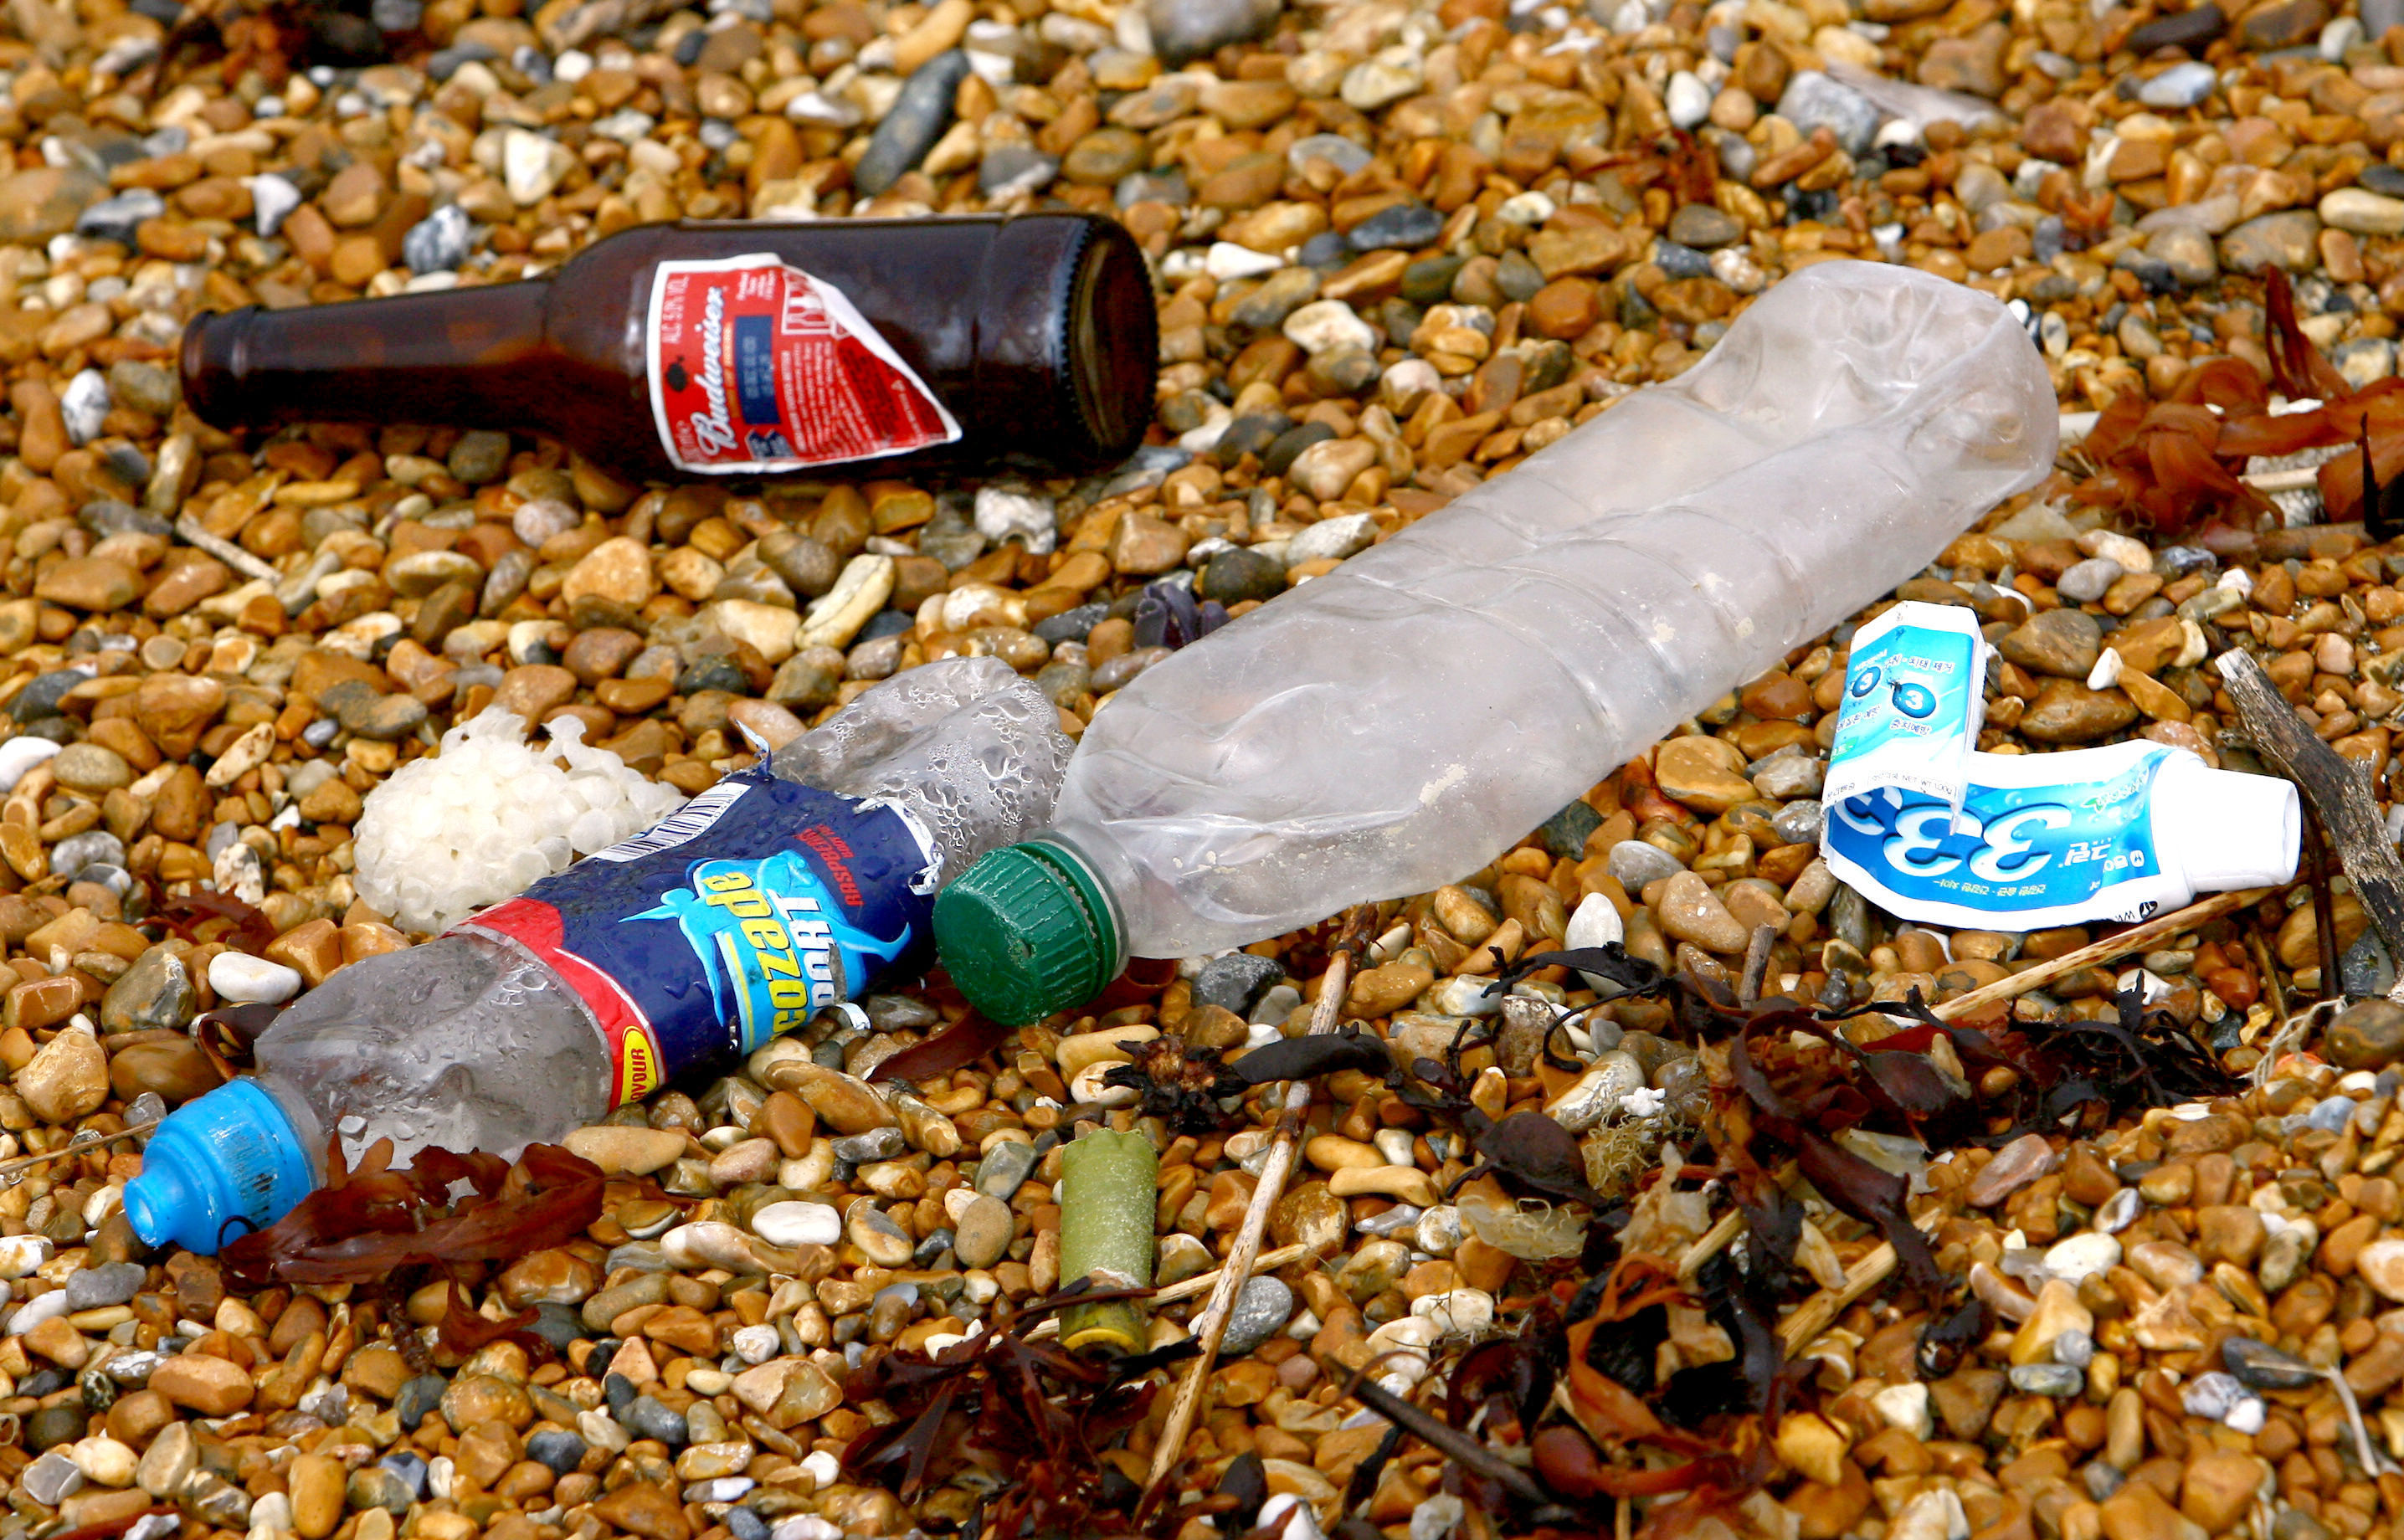 The report warns that overall the amount of plastic waste the country produces is set to rise by a fifth by the end of the next decade - with a 34% rise in crisp packets, 41% more plastic straws and 9% more drinks bottles. (Gareth Fuller/PA Wire)